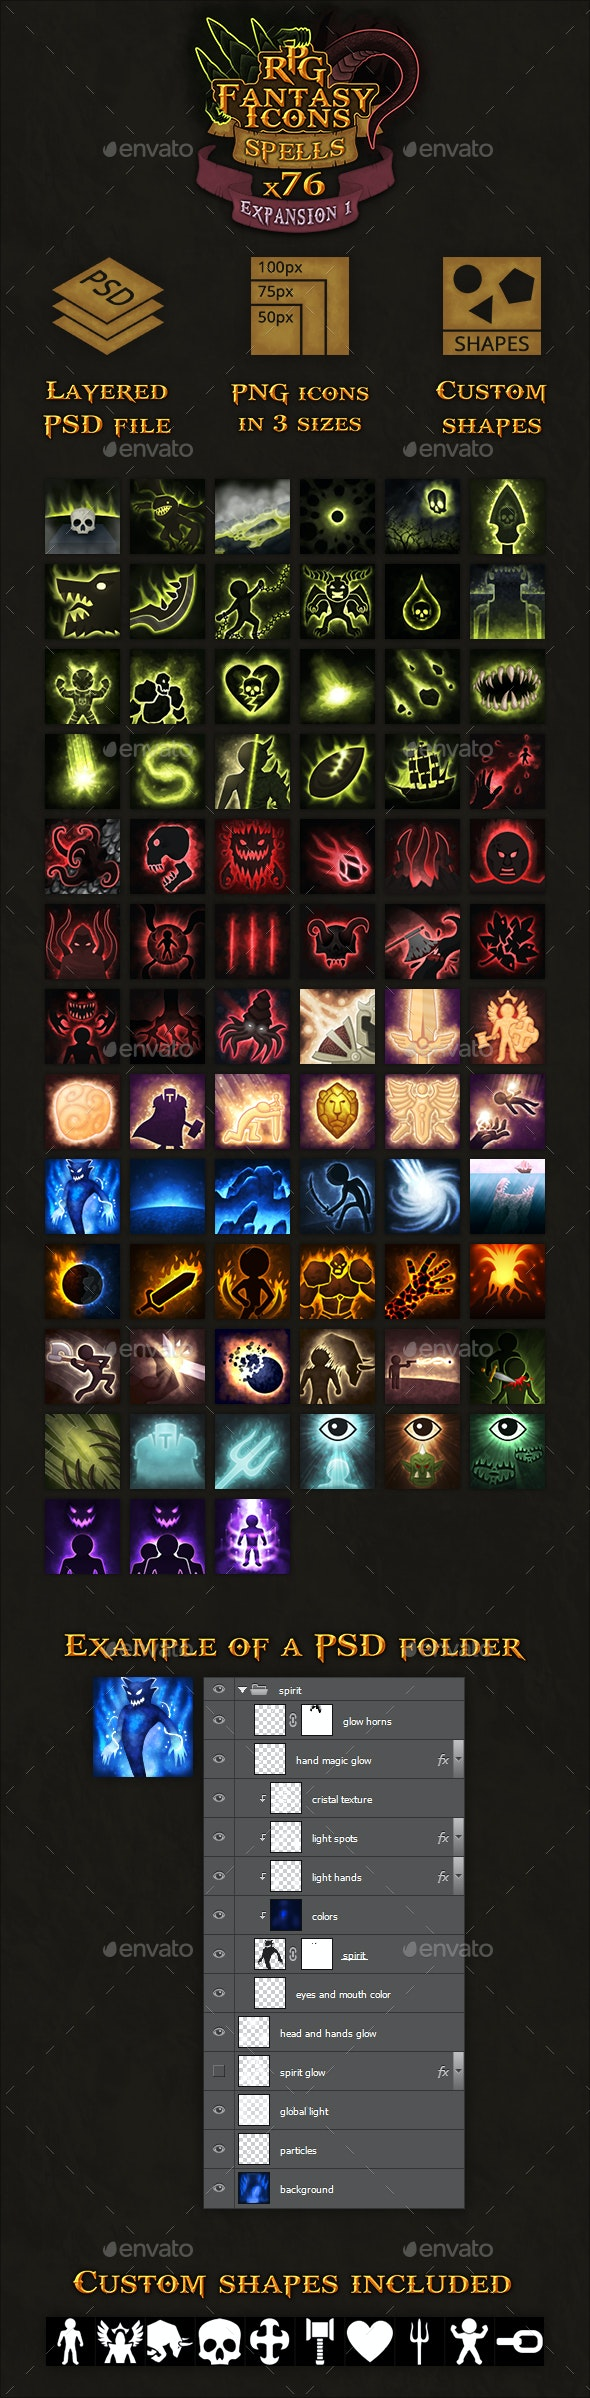 76 RPG Fantasy Spells Icons - Miscellaneous Game Assets